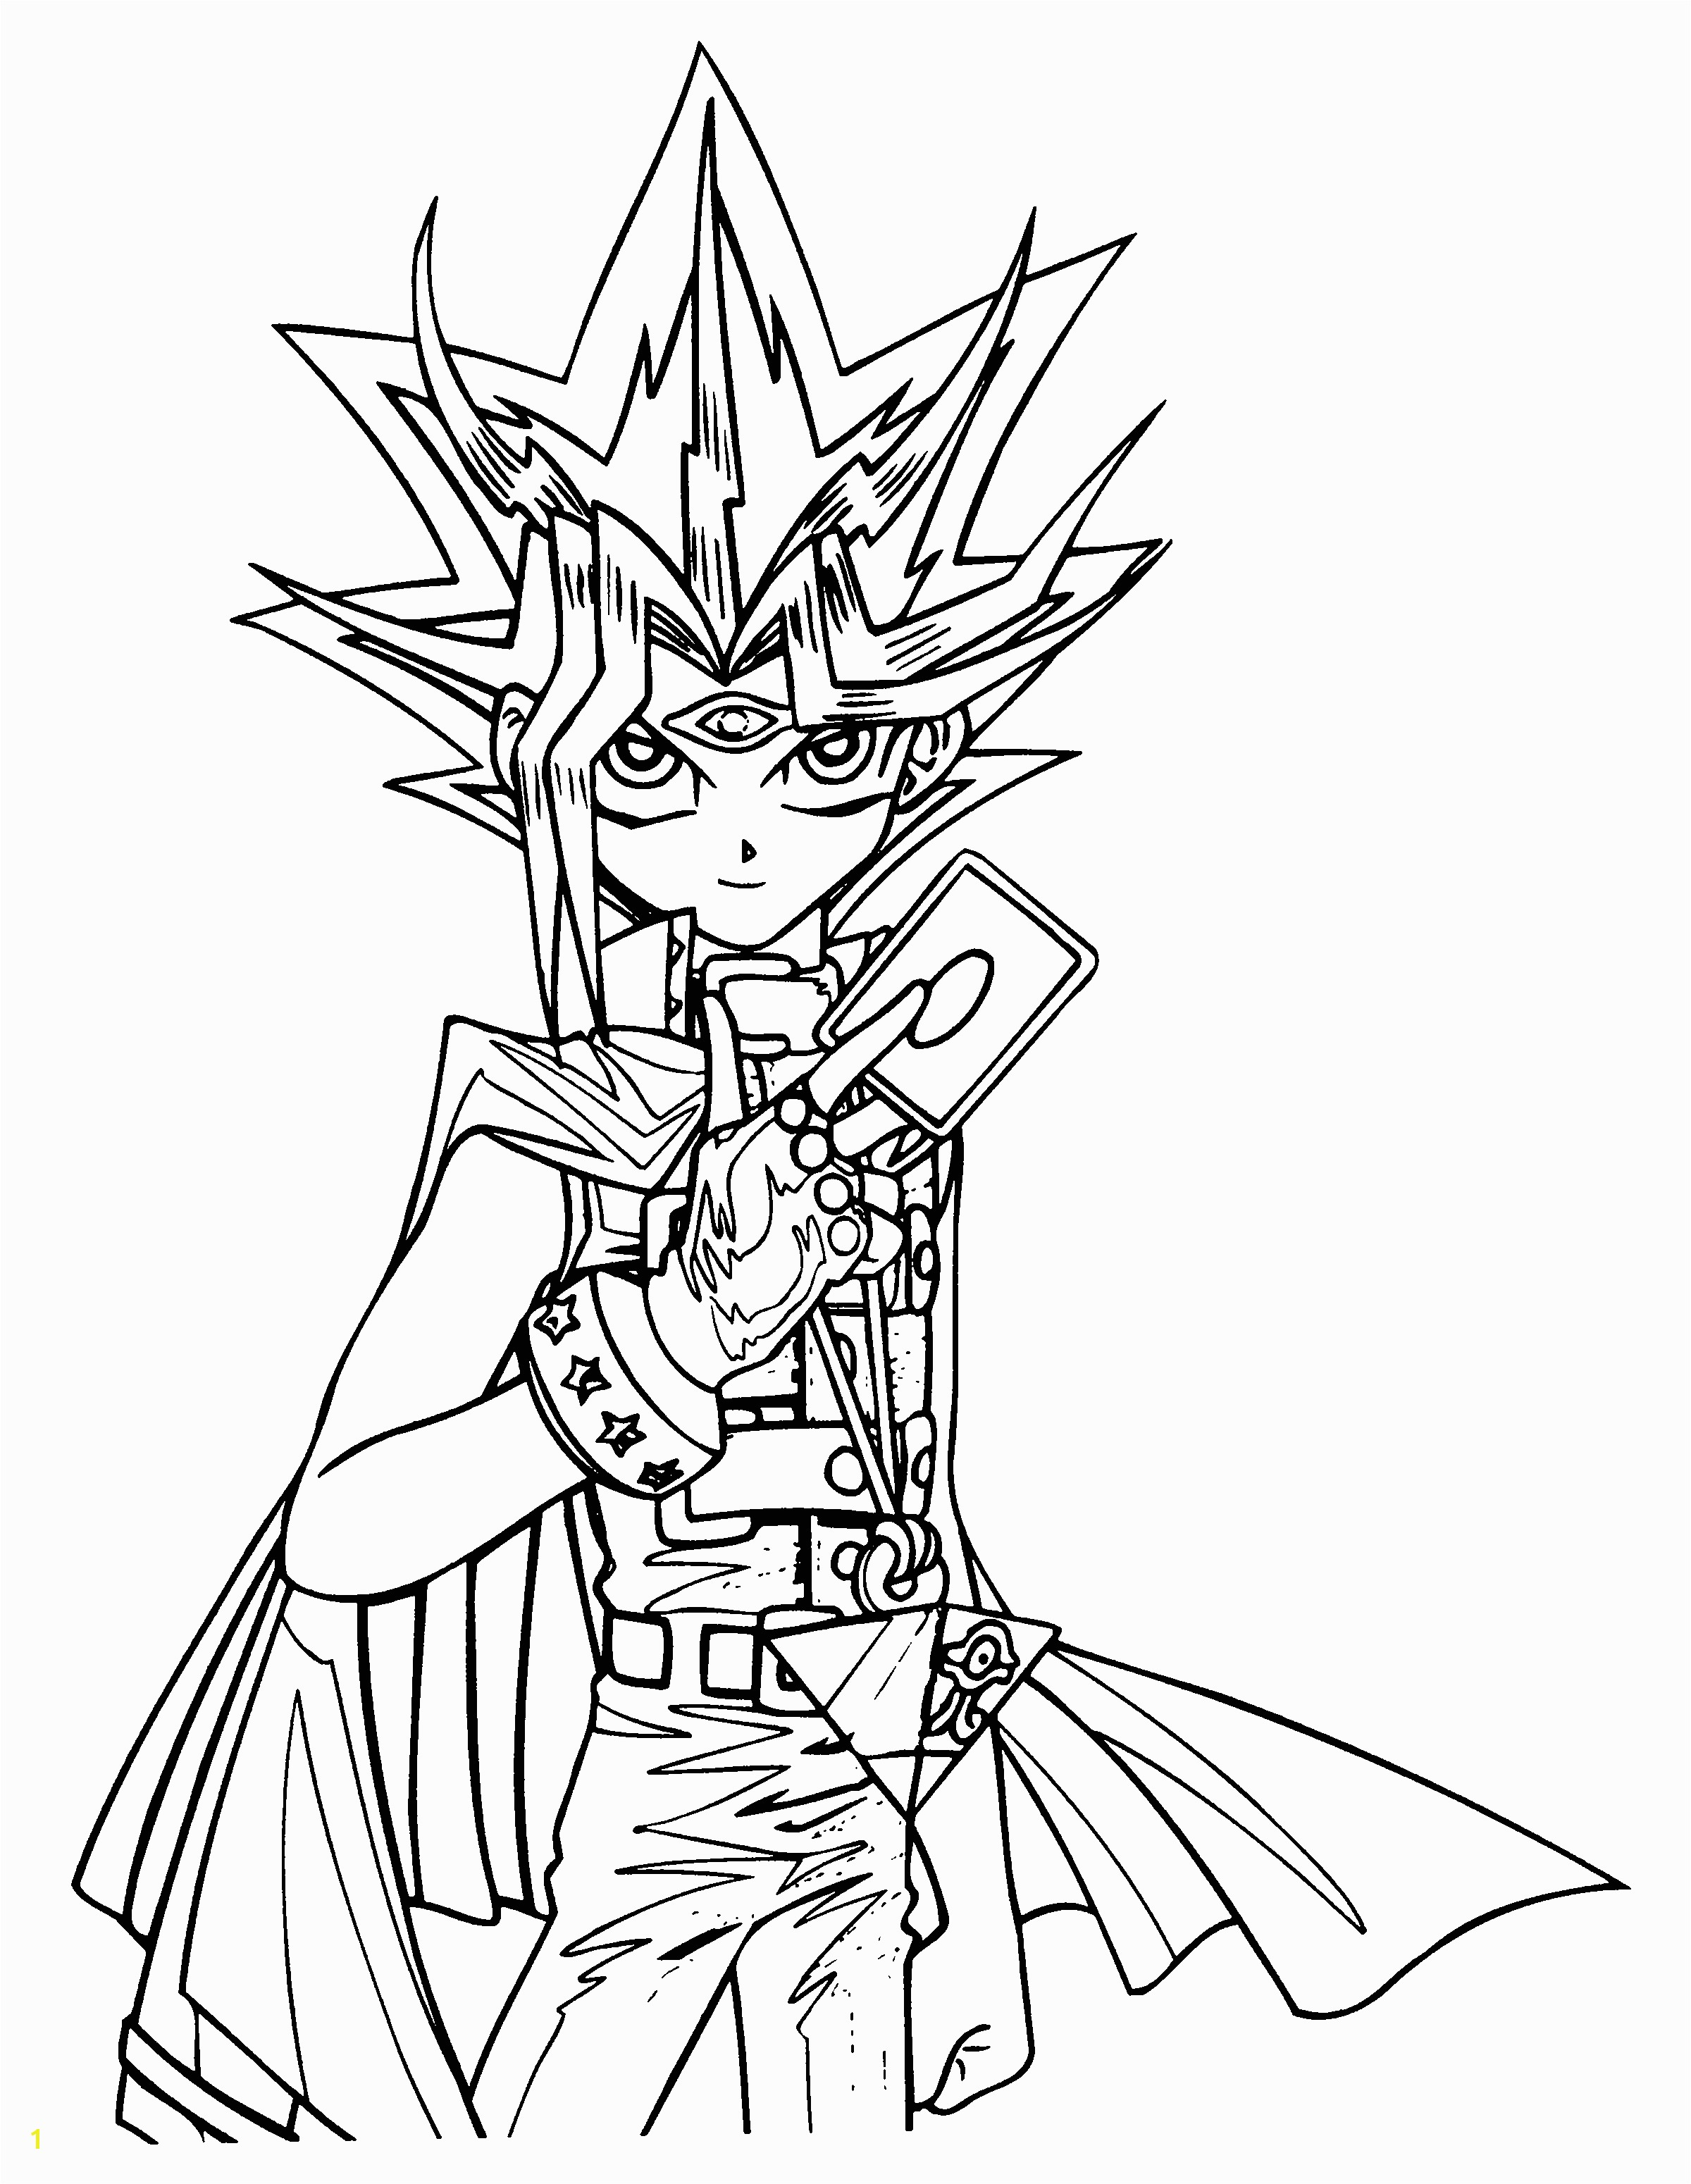 Yu Gi Oh Coloring Pages to Print Yu Gi Oh Coloring Page Tyson S 9th Birthday